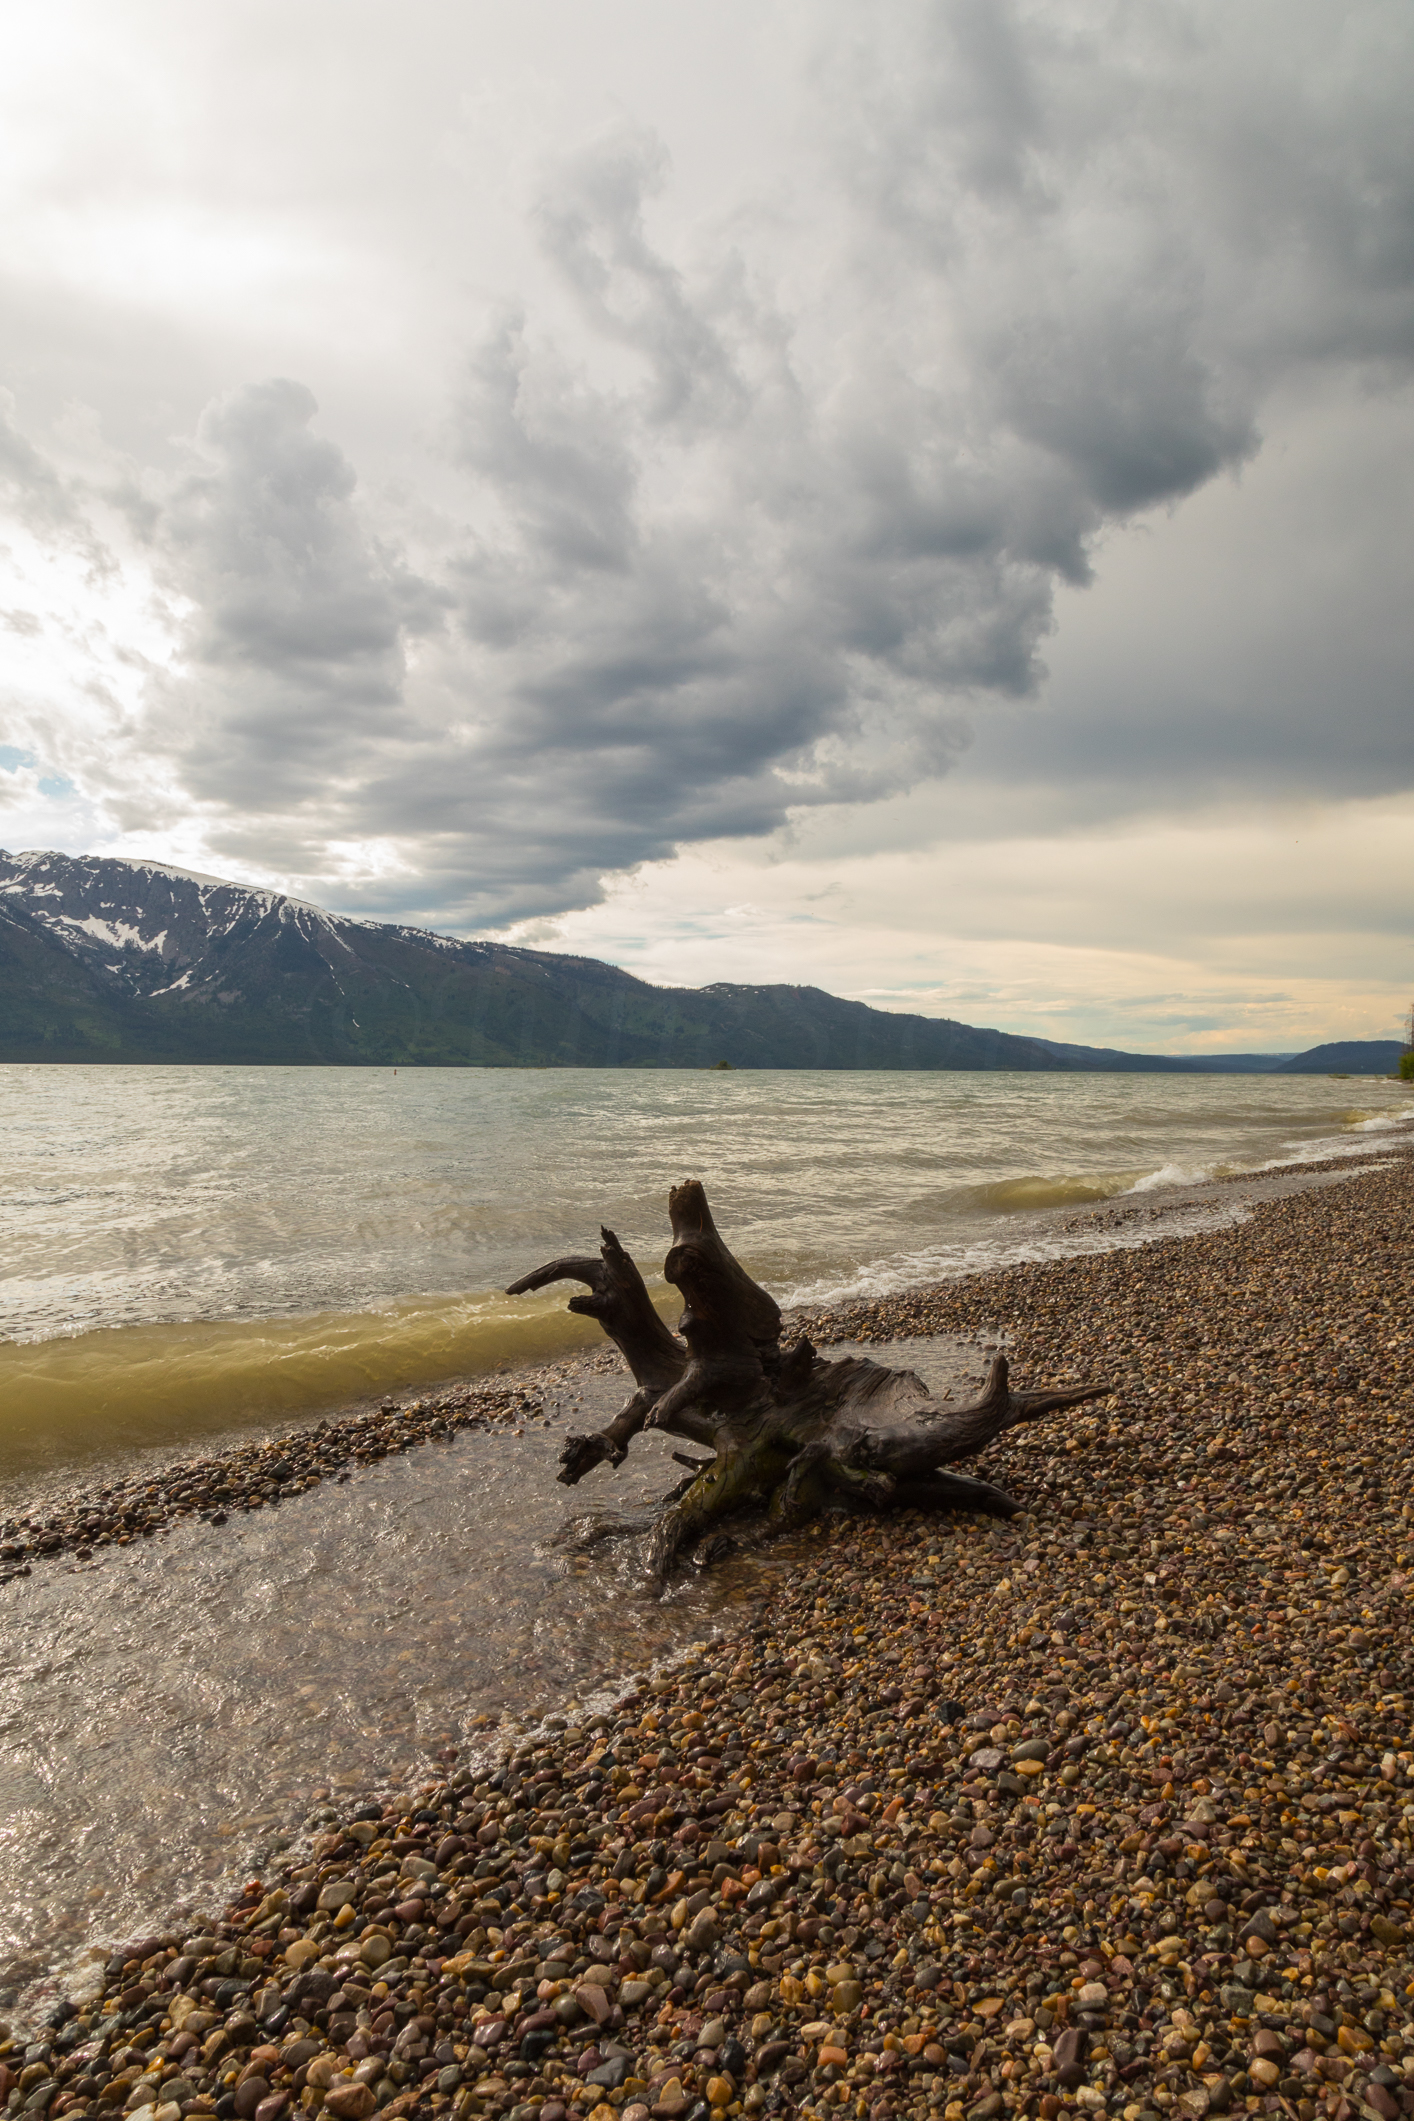 Colter Bay, Image # 3675